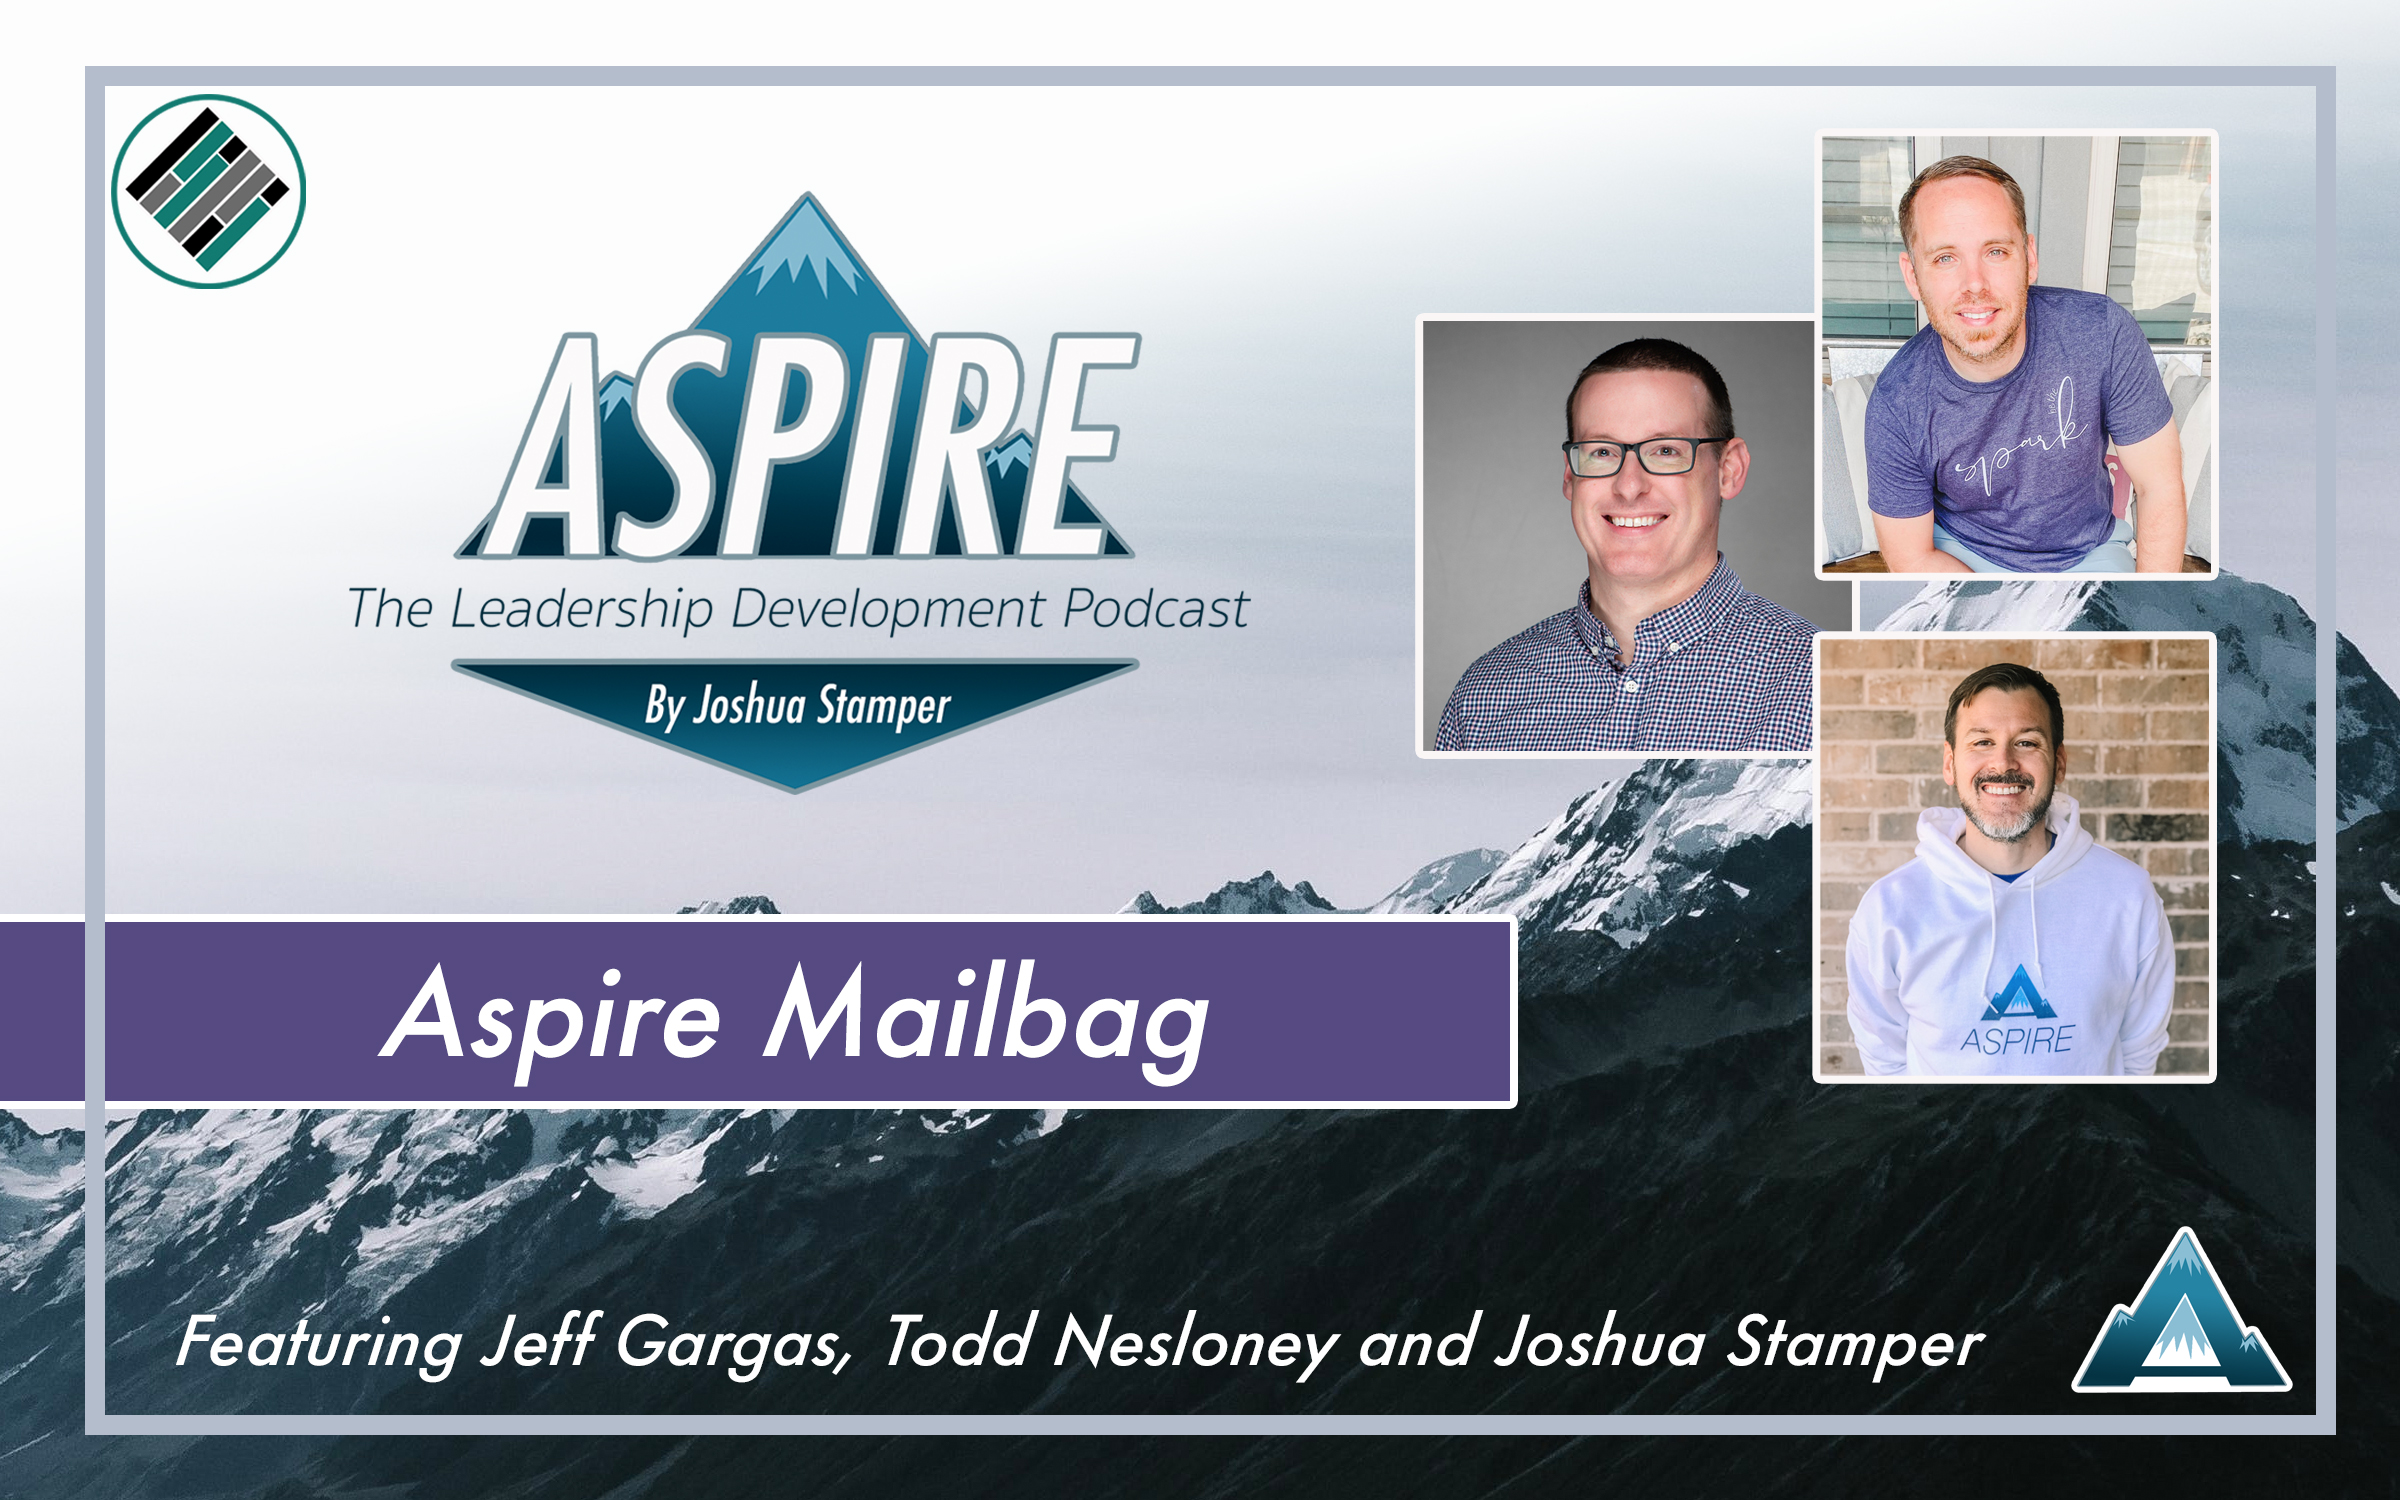 Aspire Mailbag, Aspire: The Leadership Development Podcast, Todd Nesloney, Jeff Gargas, Joshua Stamper